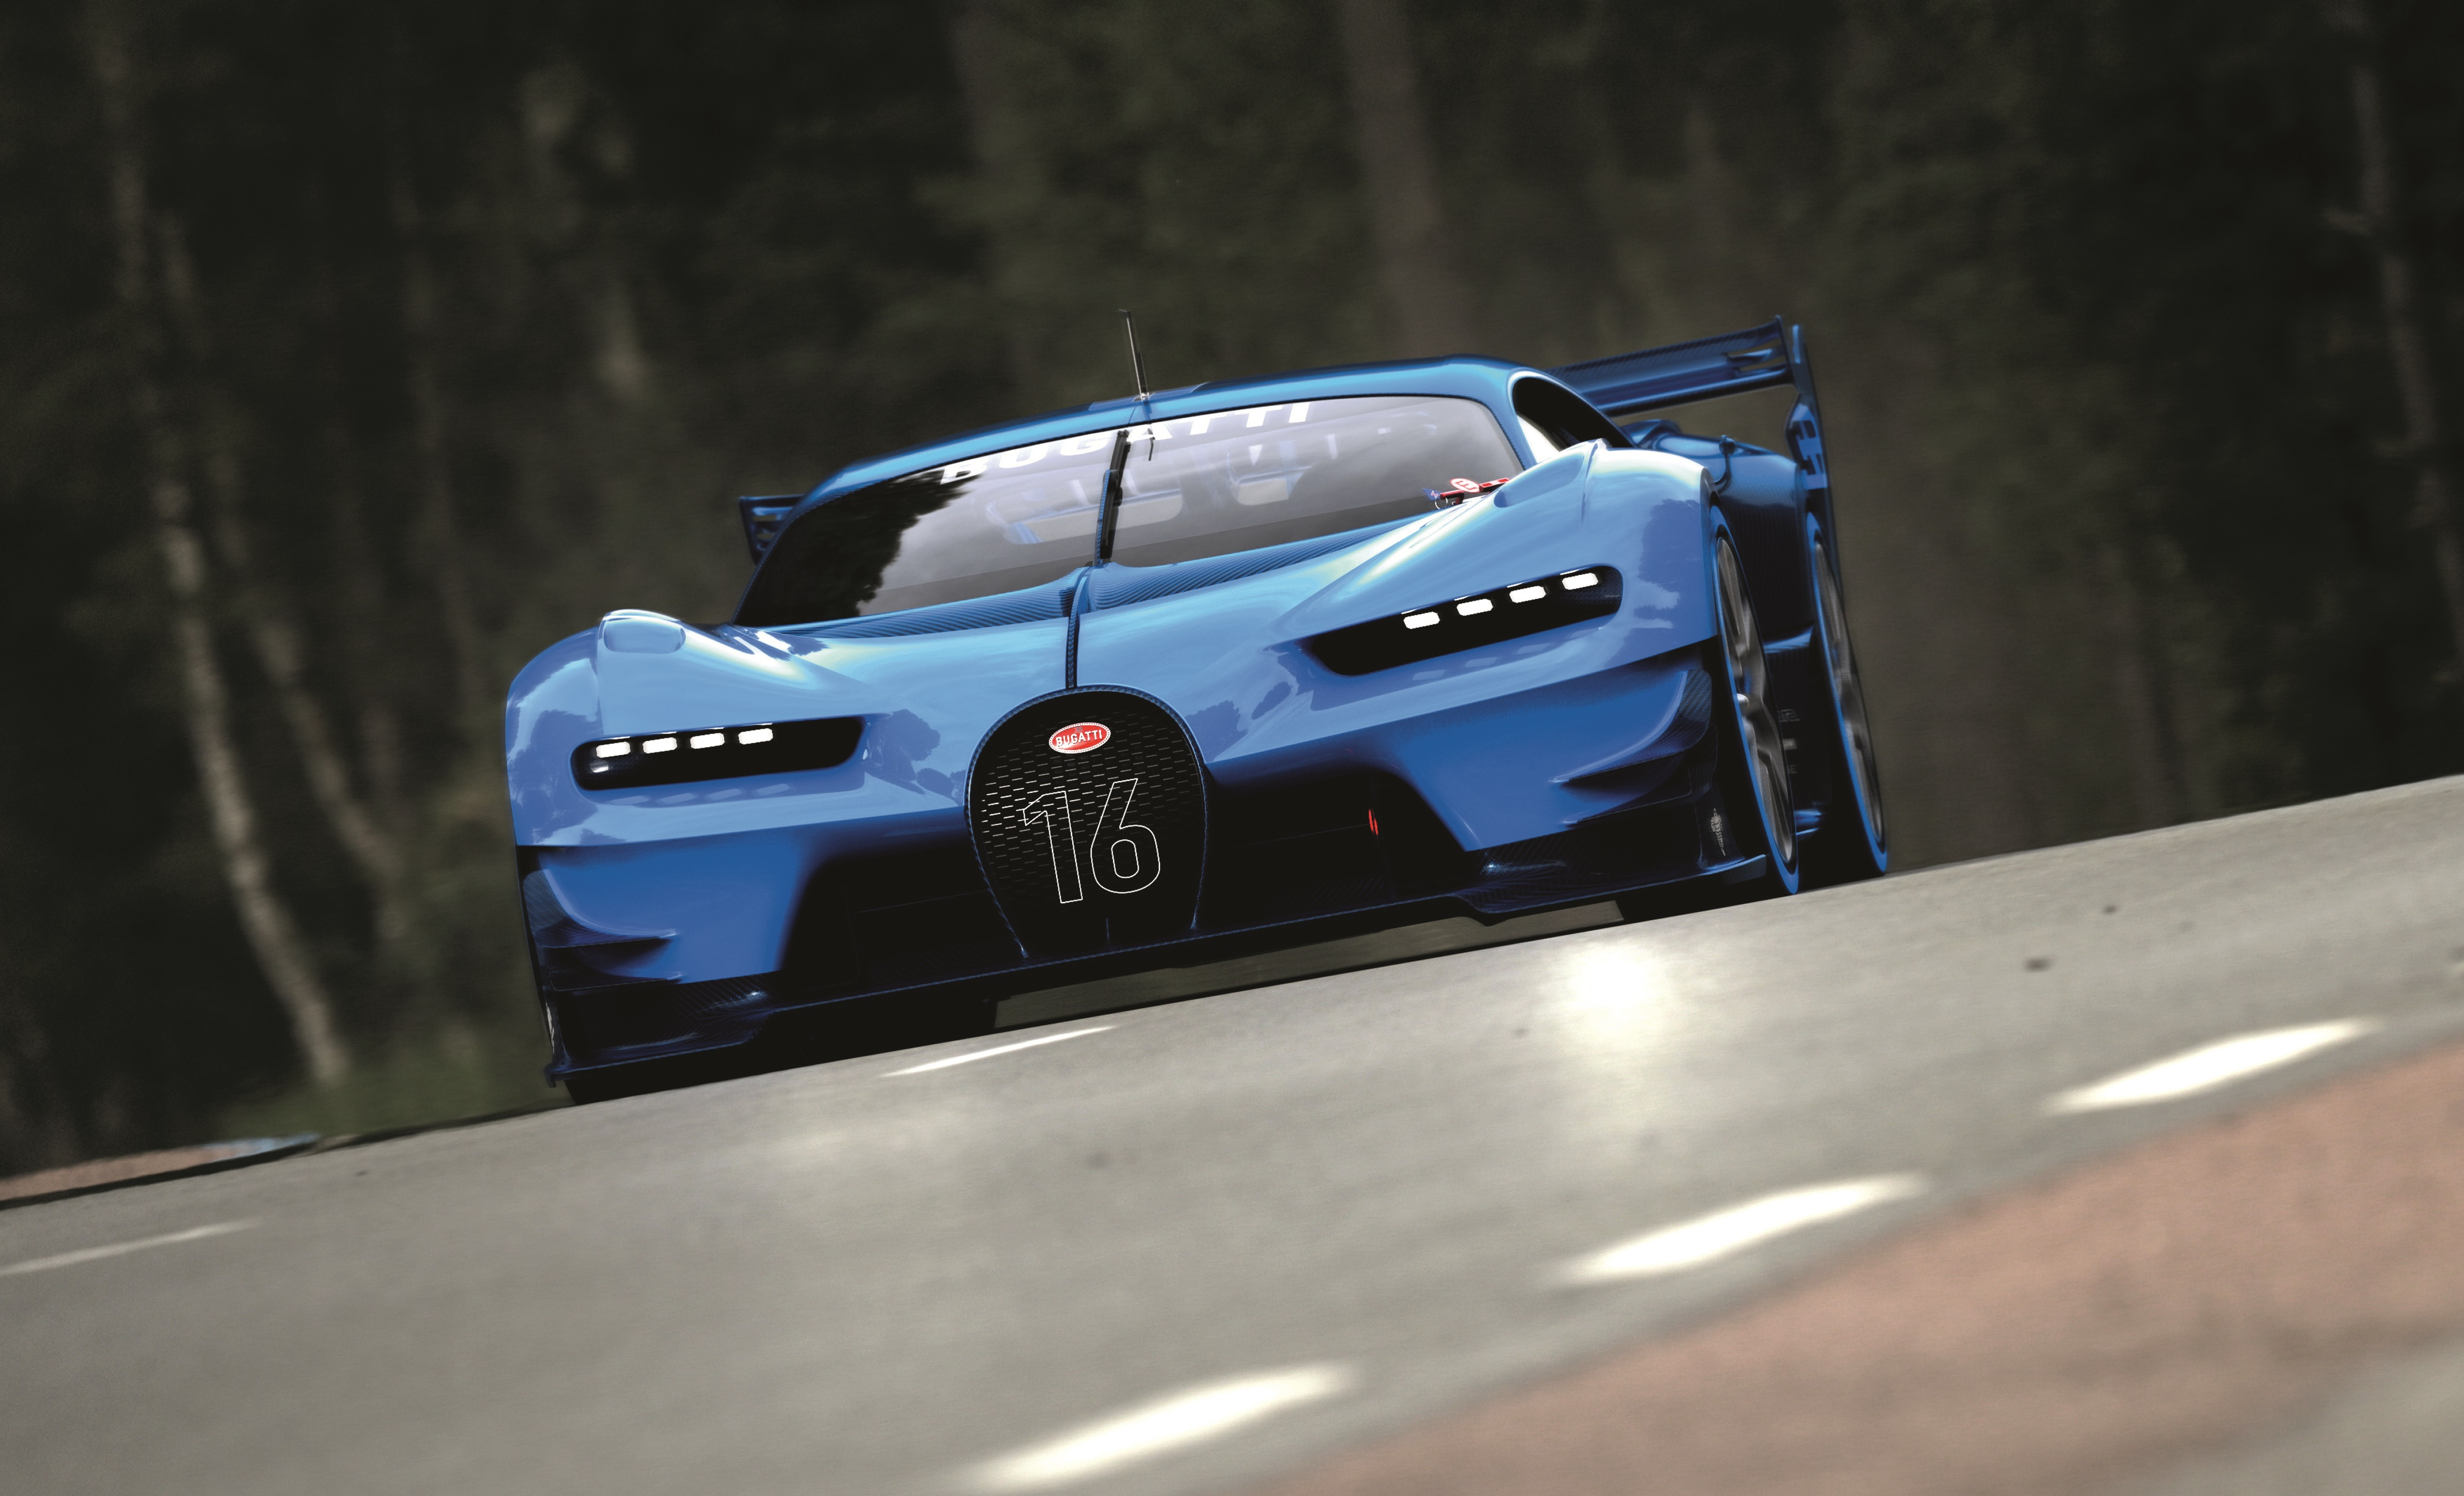 BUGATTI'S VISION: THIS IS FOR THE FANS - Les Carats on mitsubishi gt vision, renault alpine gt vision, subaru viziv gt vision, bmw gt vision,